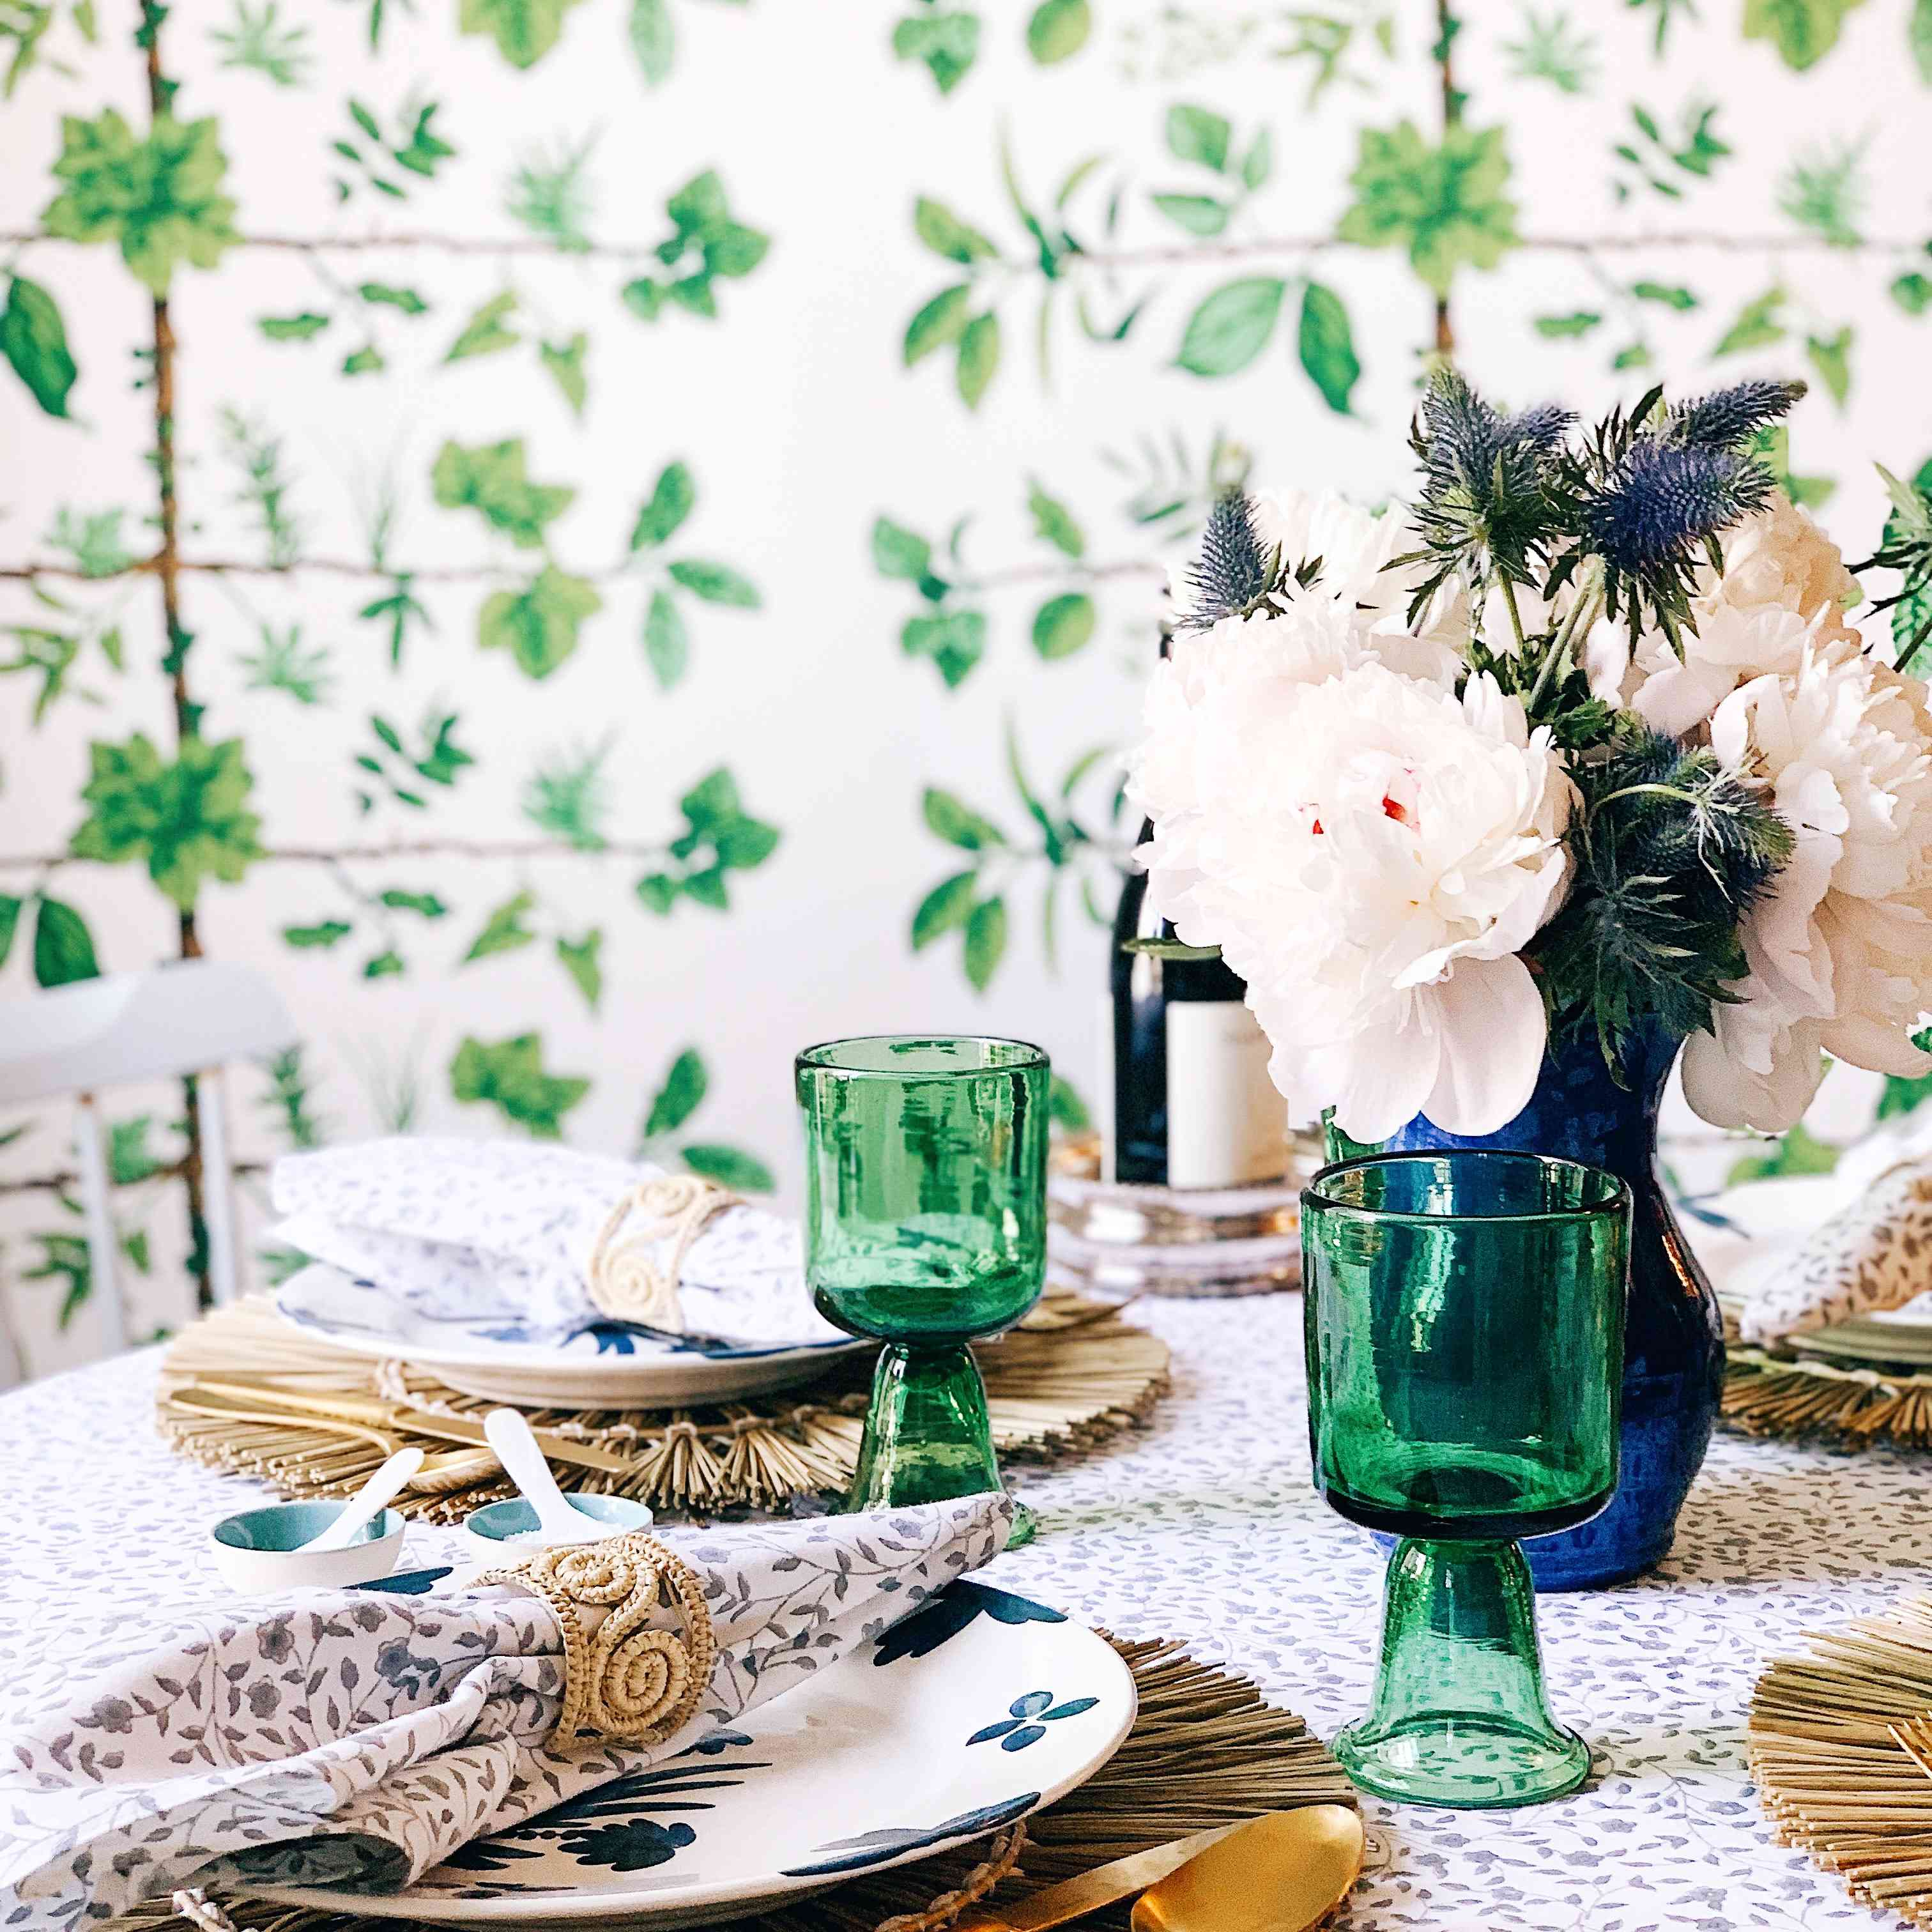 tablesetting features matching chargers, plates, green glasses, and white florals for the centerpiece